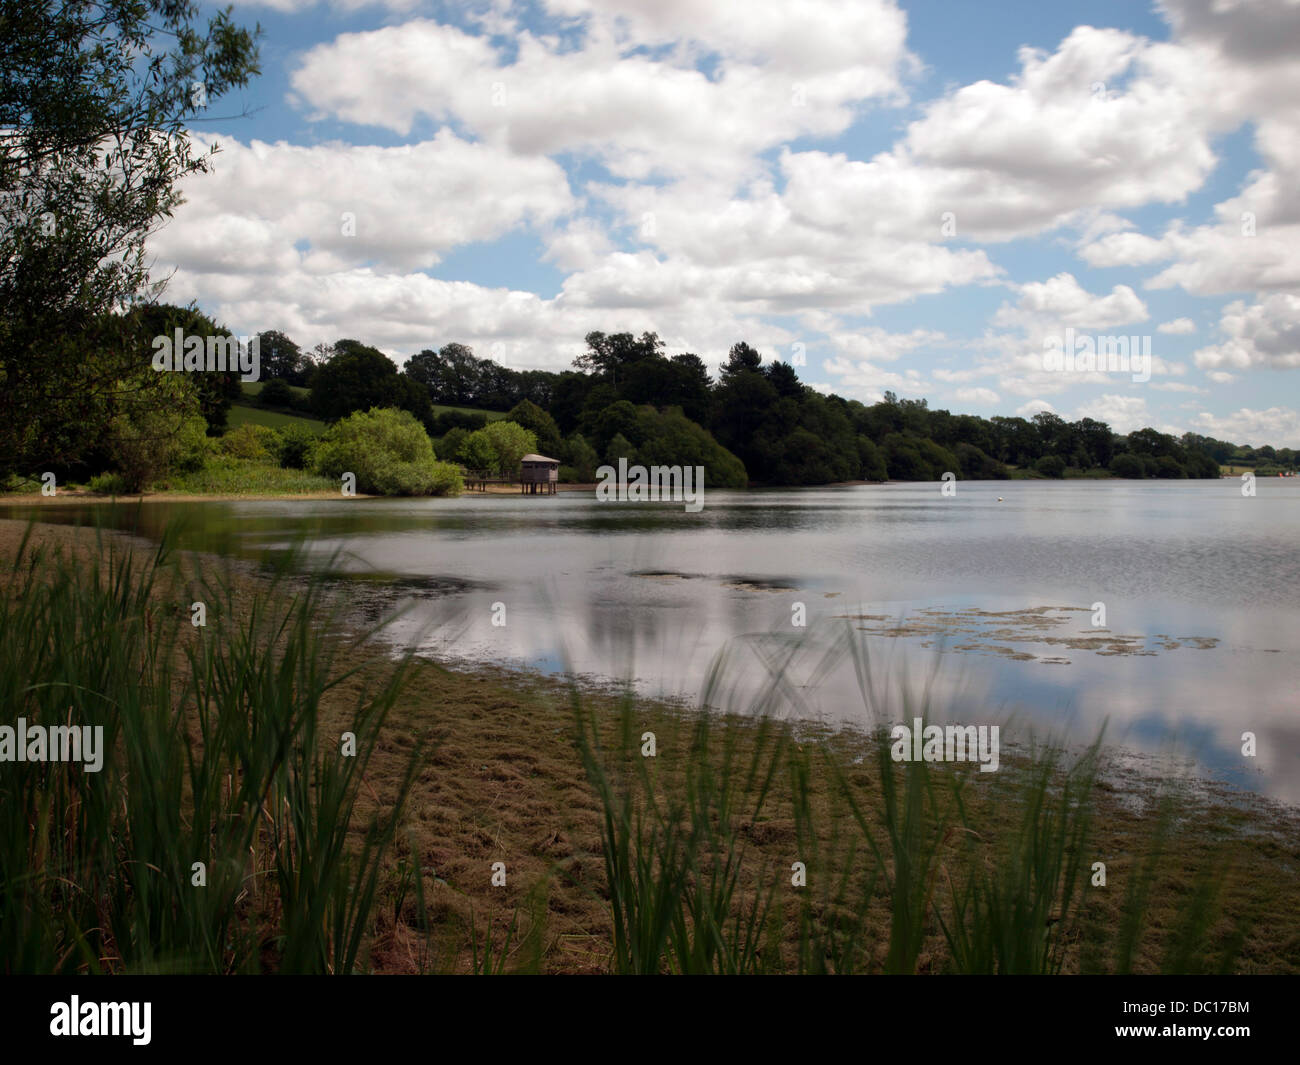 The Hide at Ardingly Reservoir, peaceful and tranquil surroundings at this countryside spot. - Stock Image